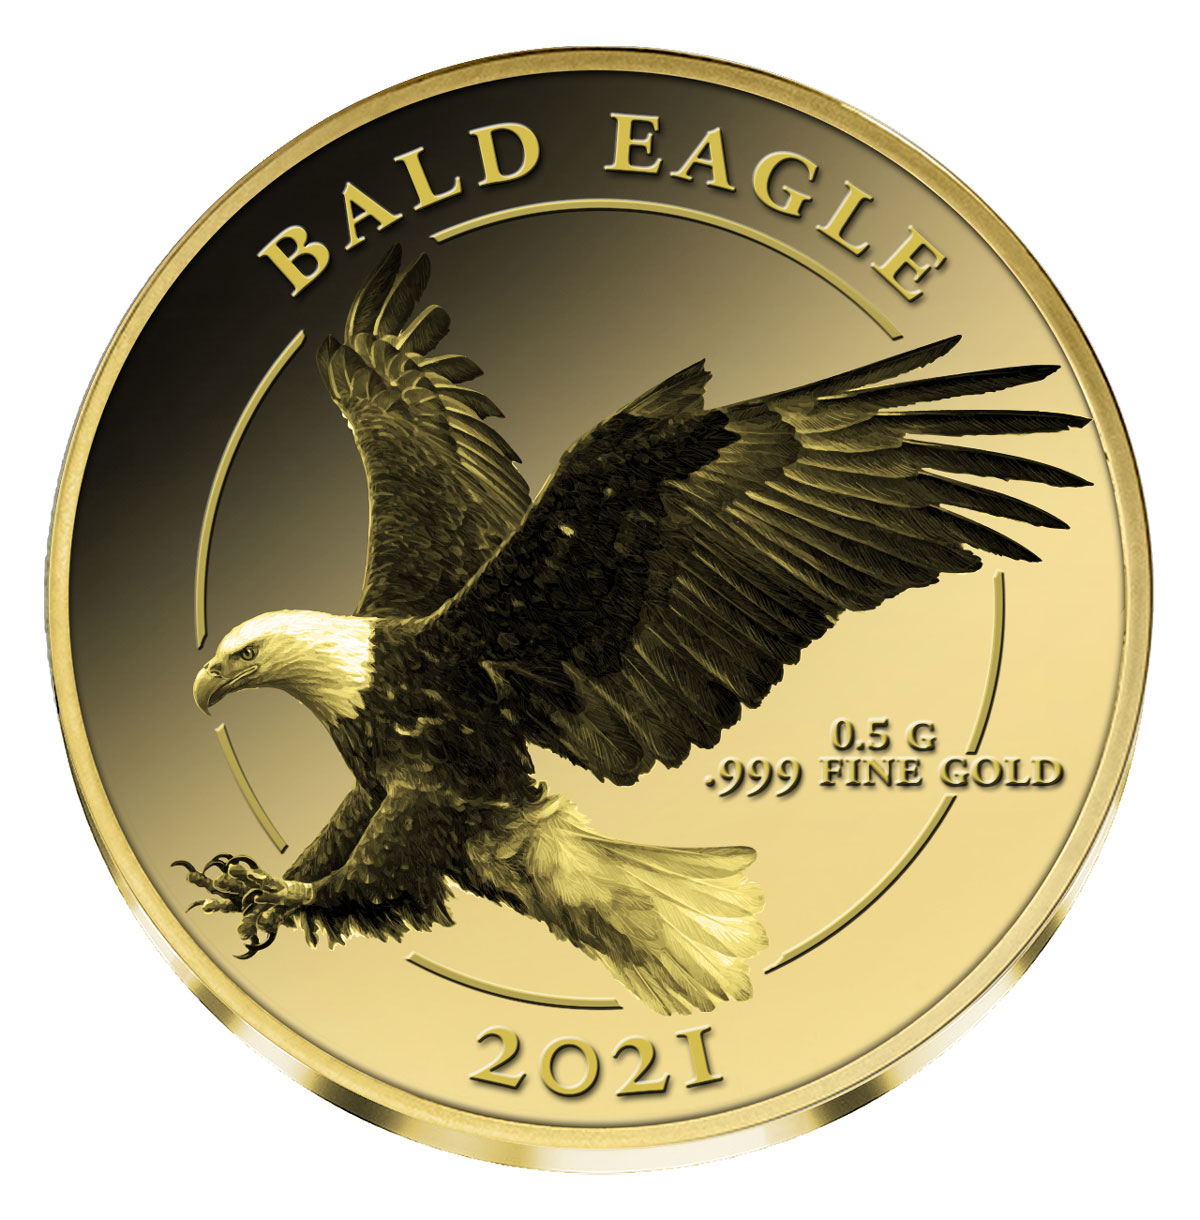 2021 Fiji Bald Eagle 0.5 g Gold Proof $5 Coin Proof